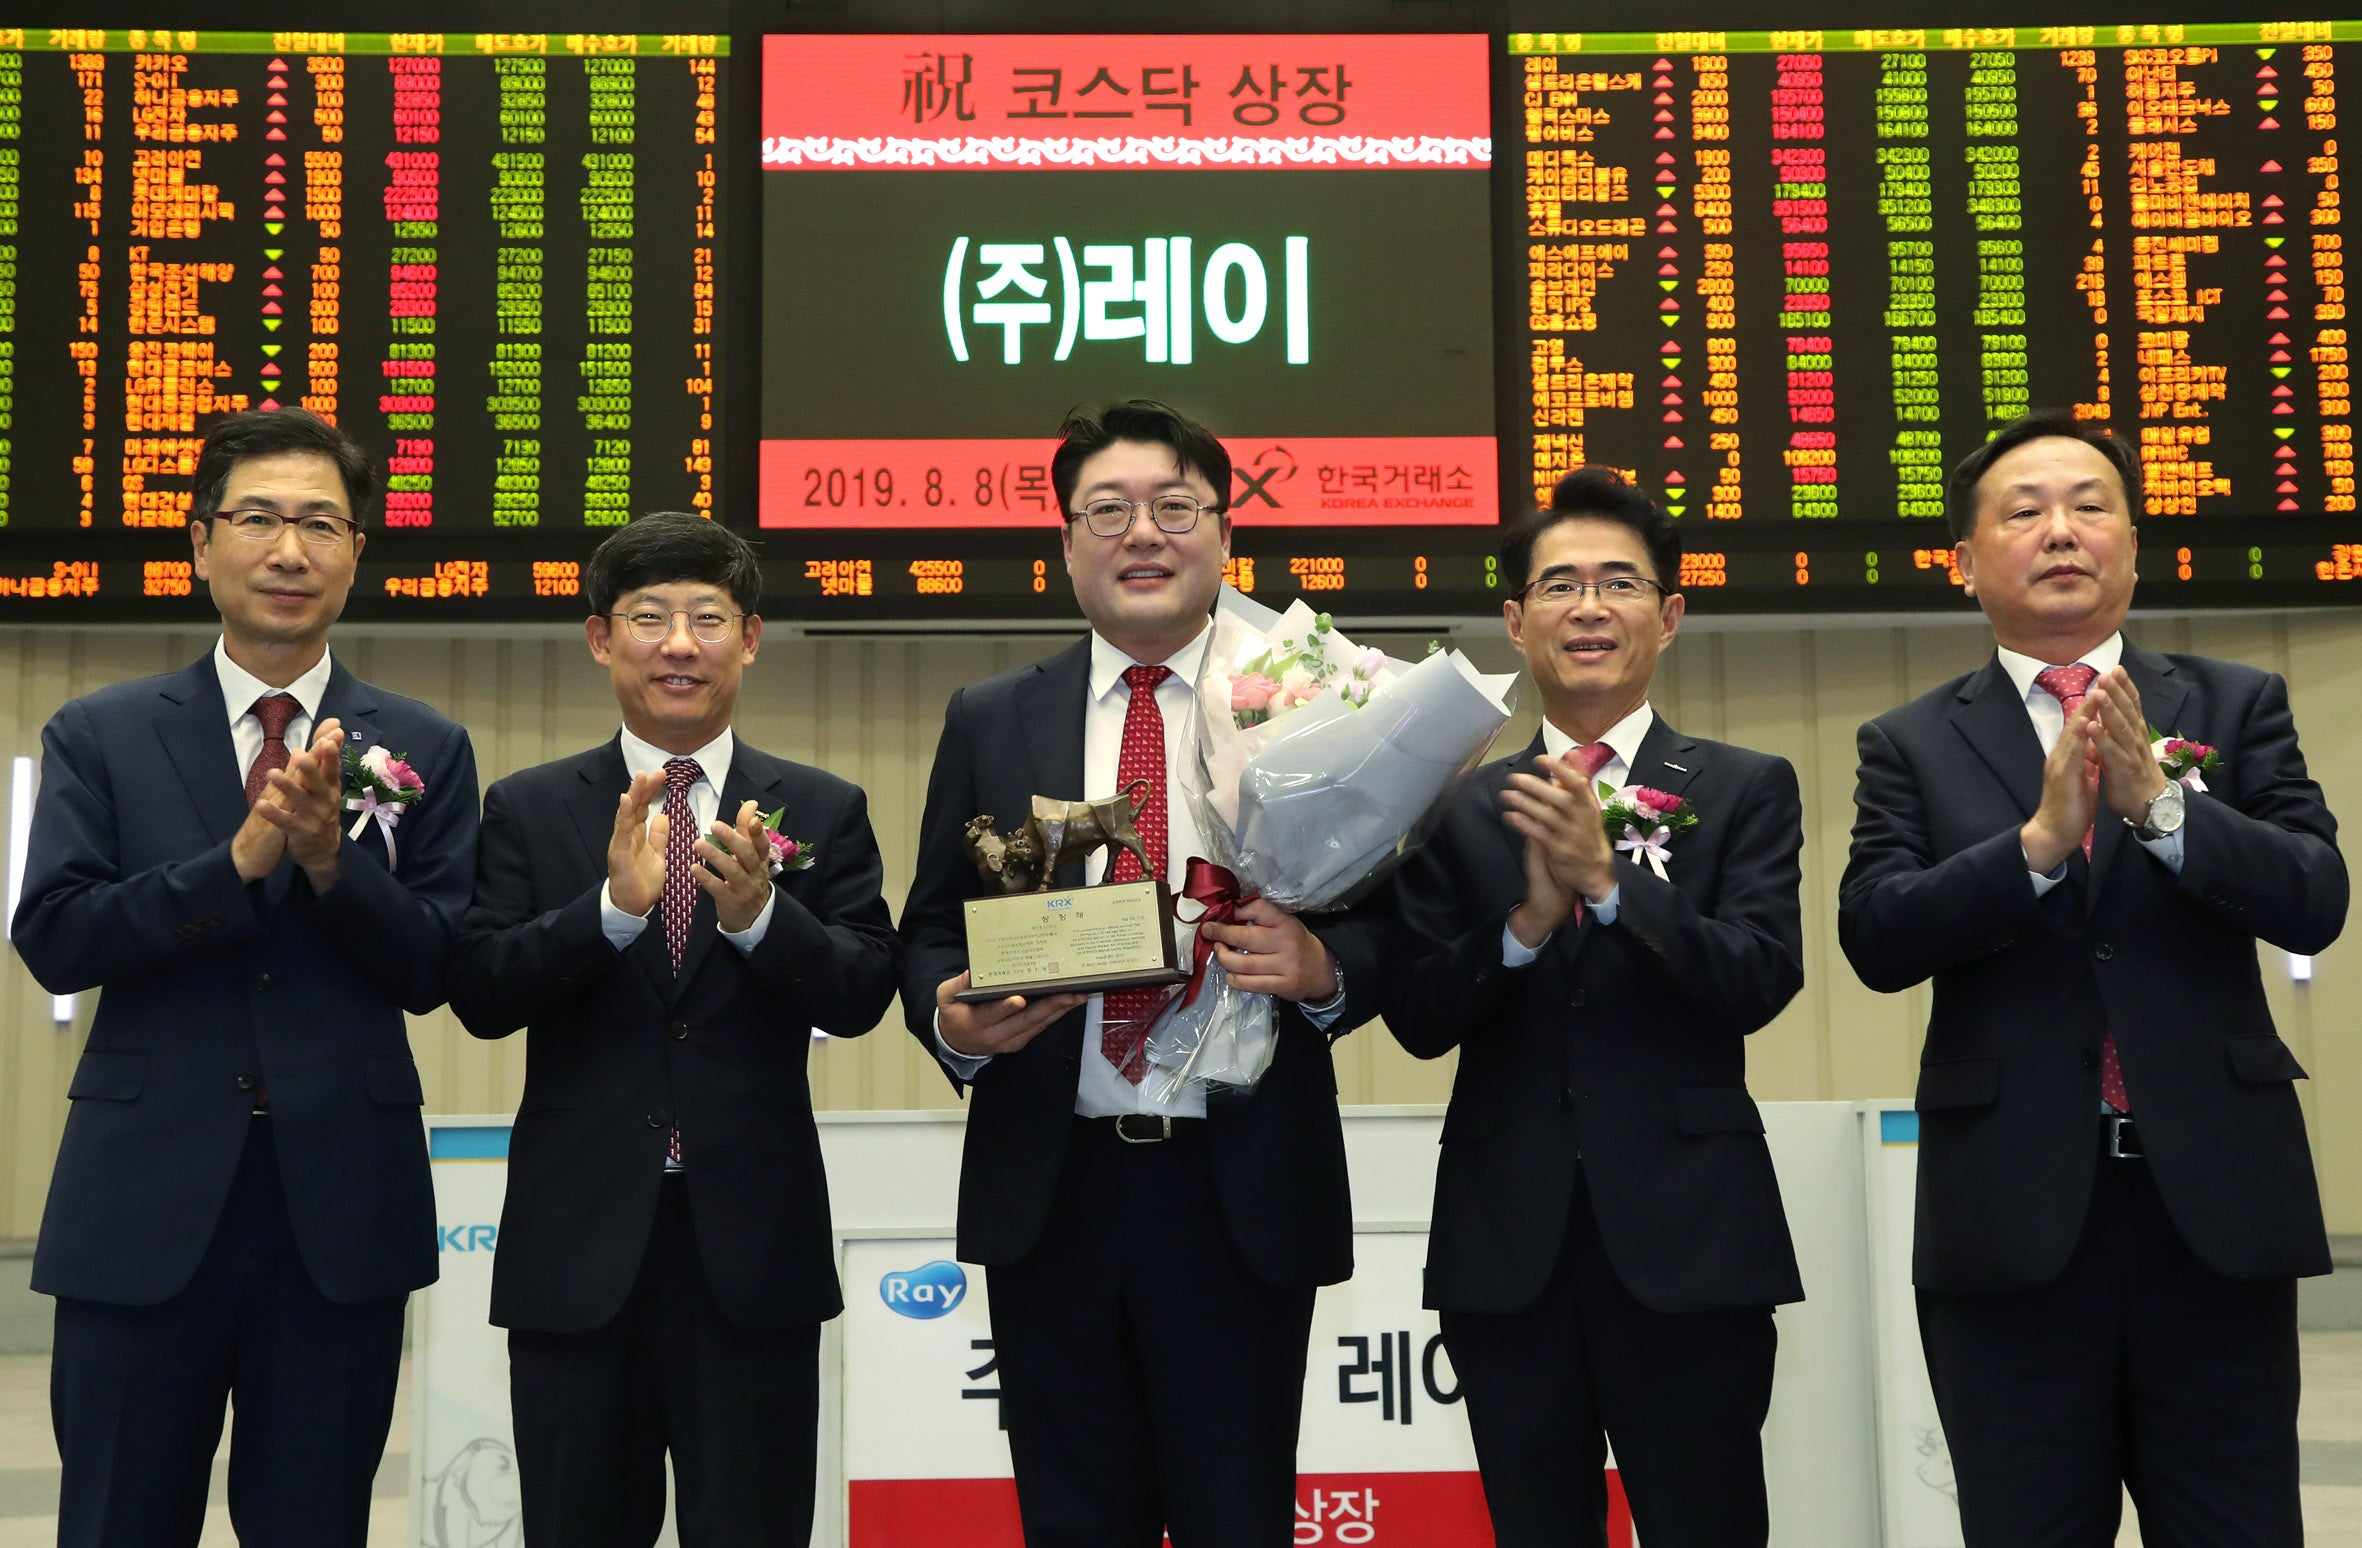 Ray Co., Ltd. has successfully completed the ceremony celebrating its listing on the KOSDAQ(Korea Securities Dealers Automated Quotation) at the Korea Exchange on Aug. 8 2019.